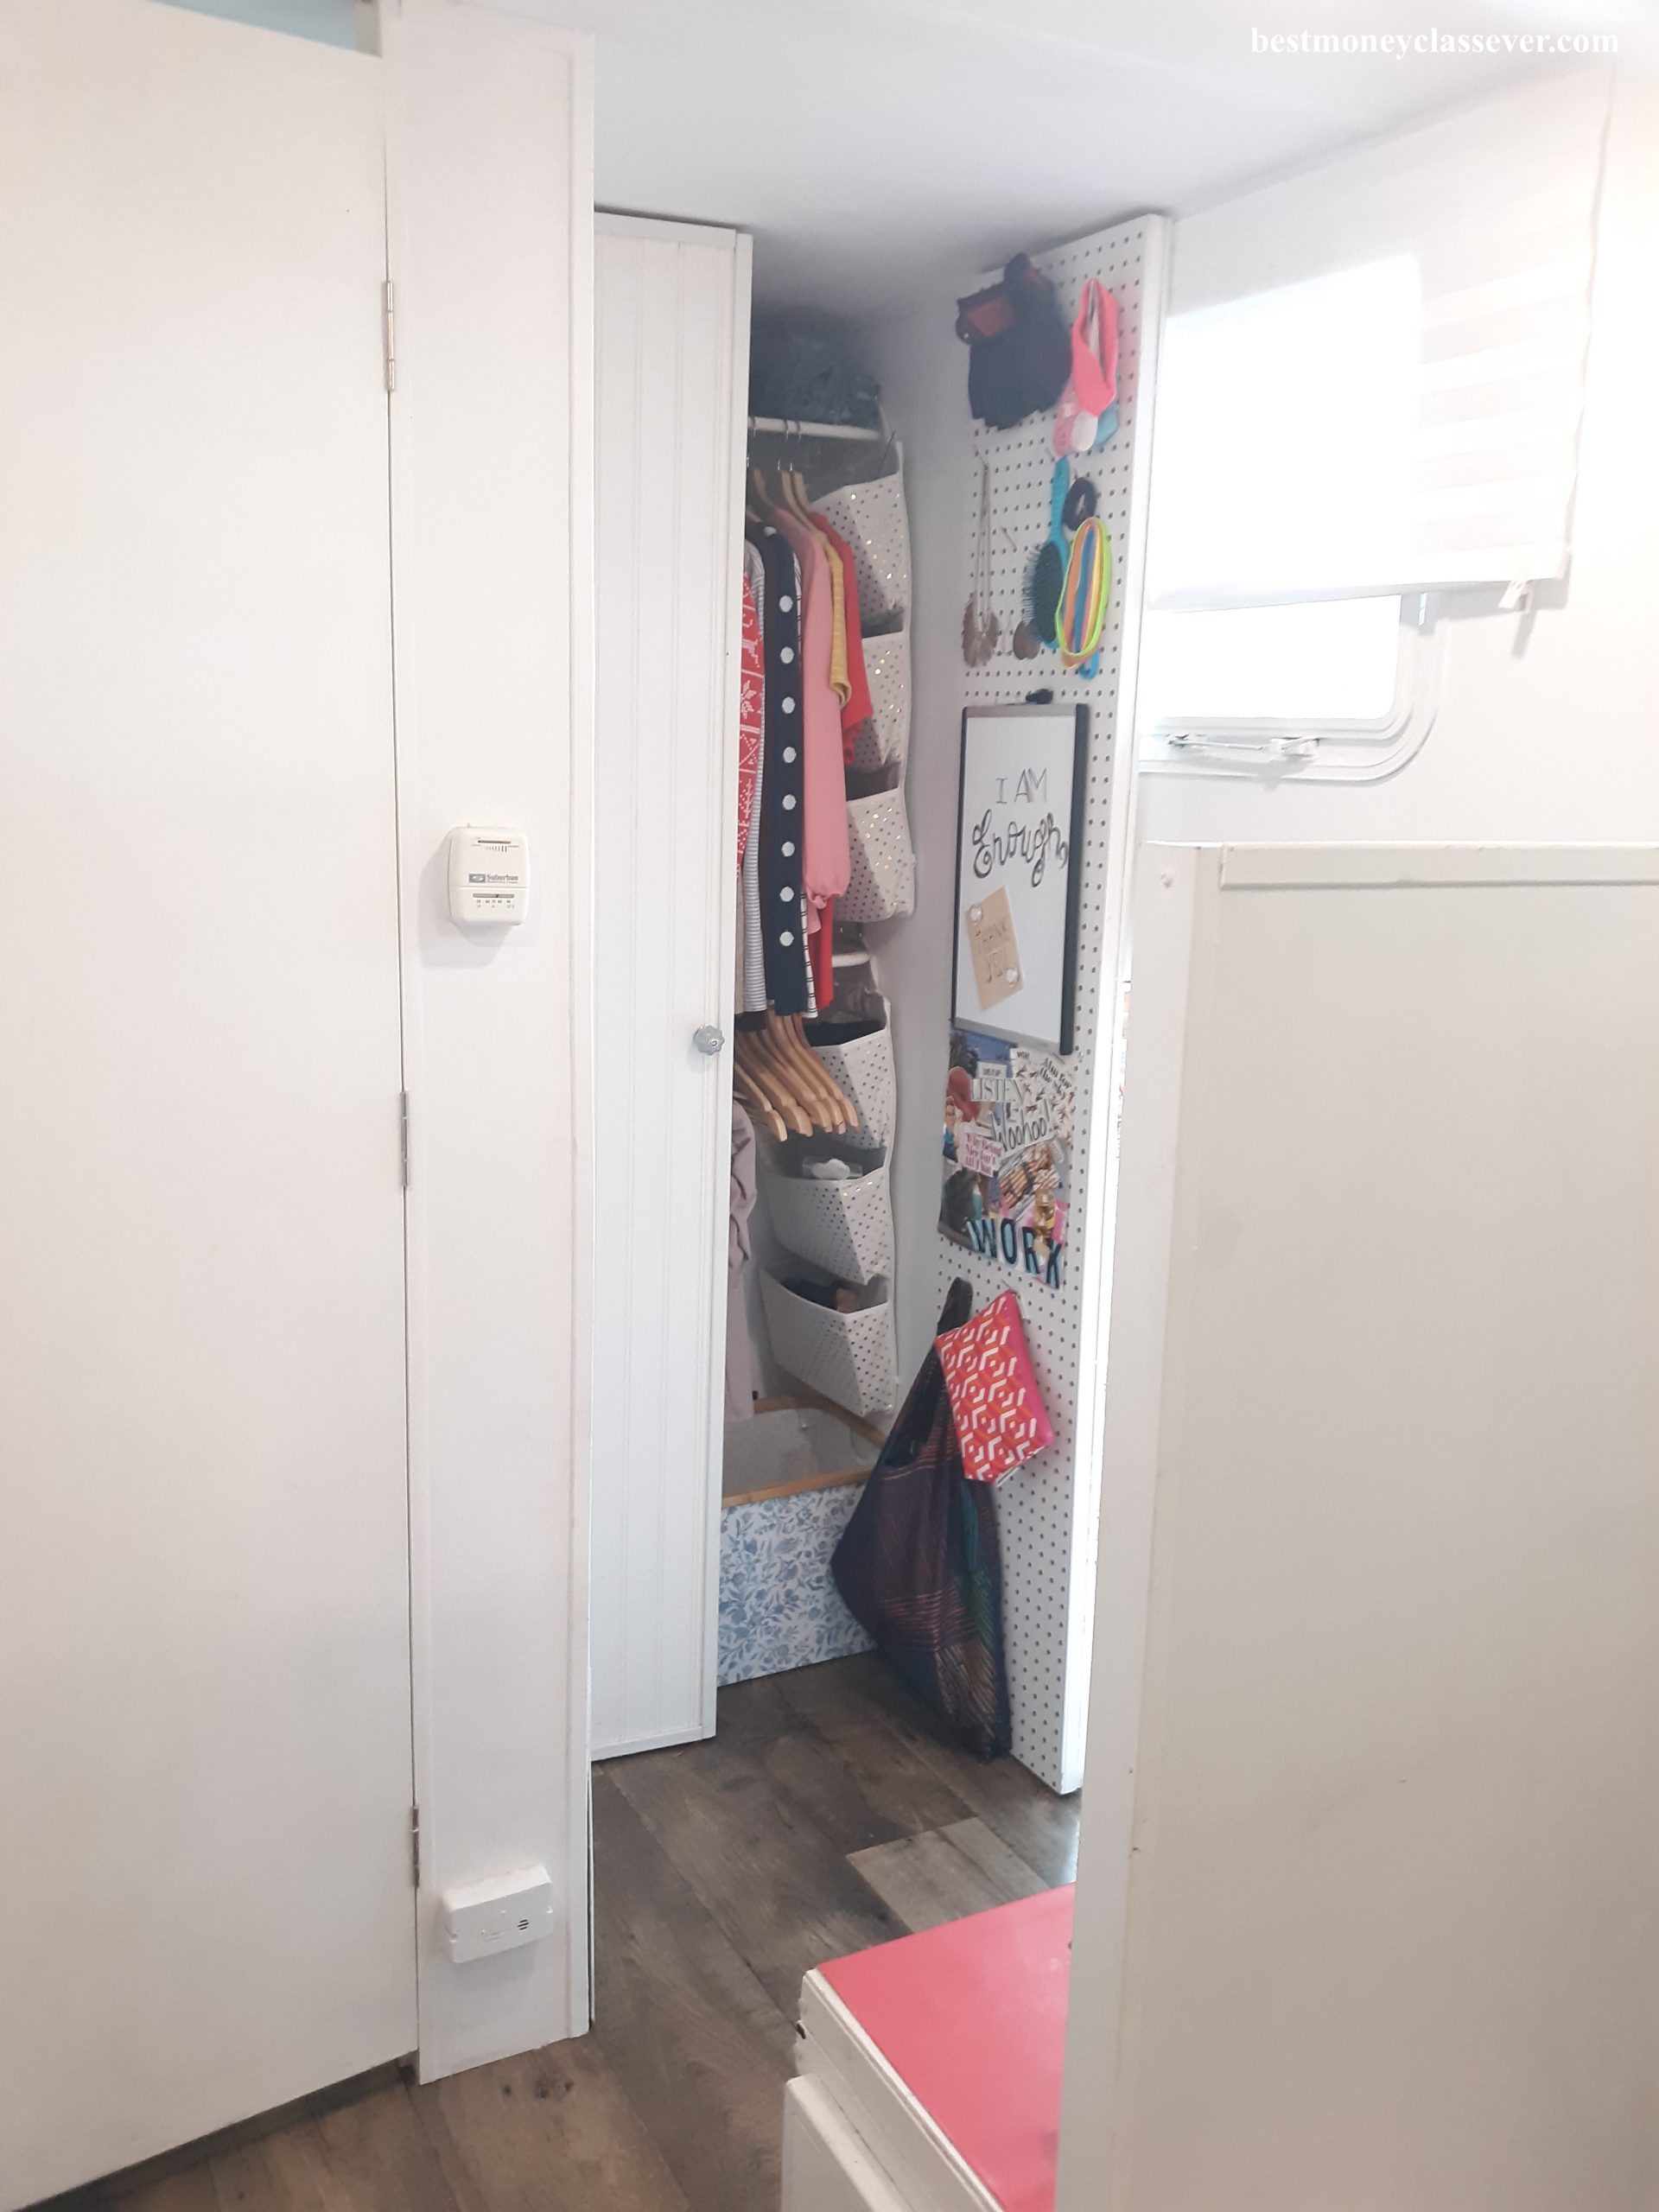 The completed closet